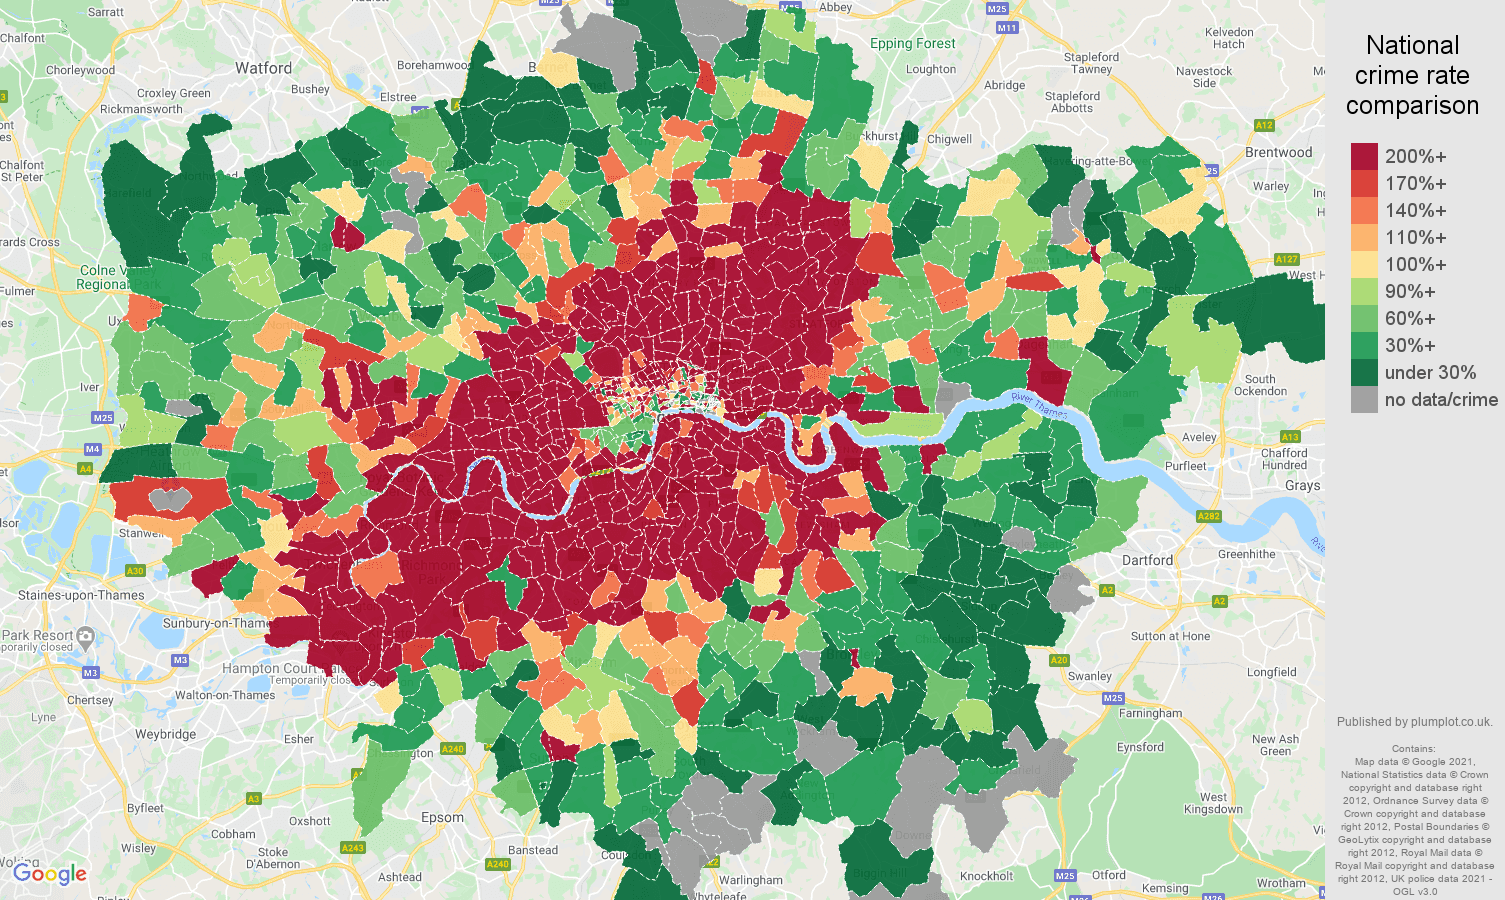 London bicycle theft crime rate comparison map